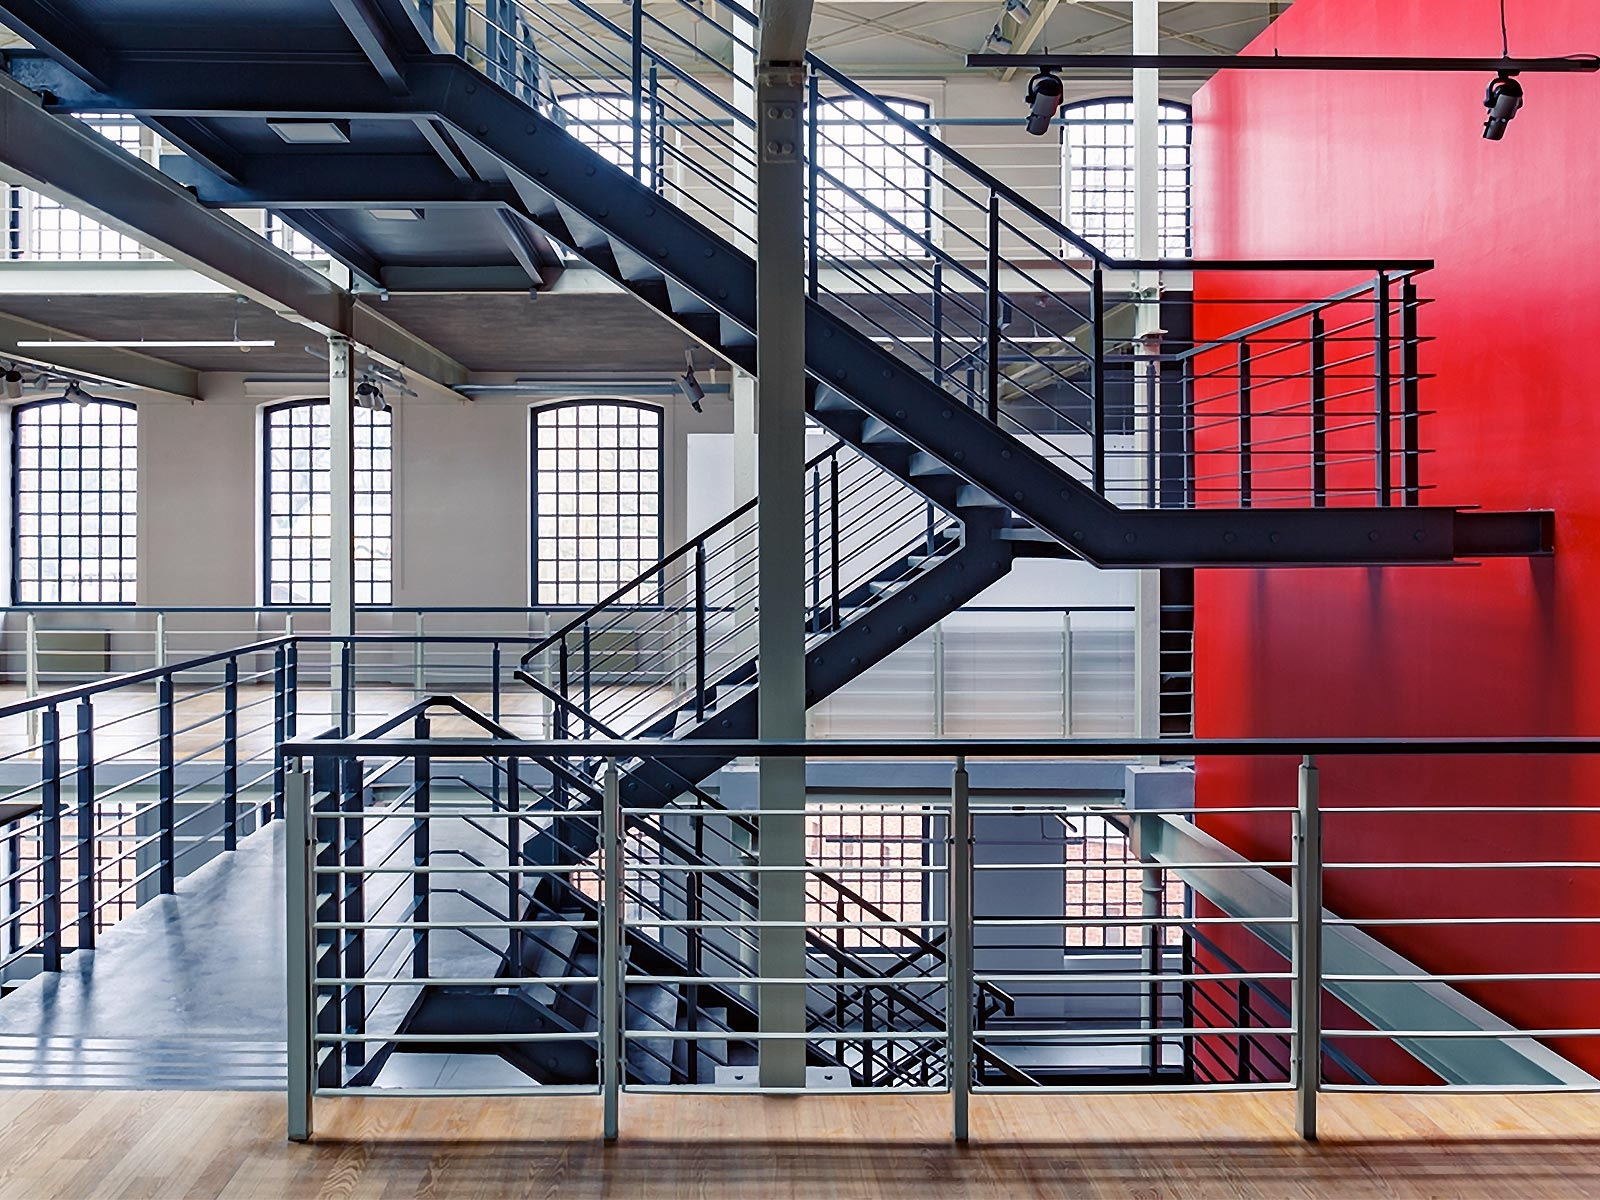 Learn The Top Benefits Of Powder Coating Railings | Powder Coated Handrails For Stairs | Ornamental Iron | Metal | Deck Railing | Wrought Iron Balusters | Balcony